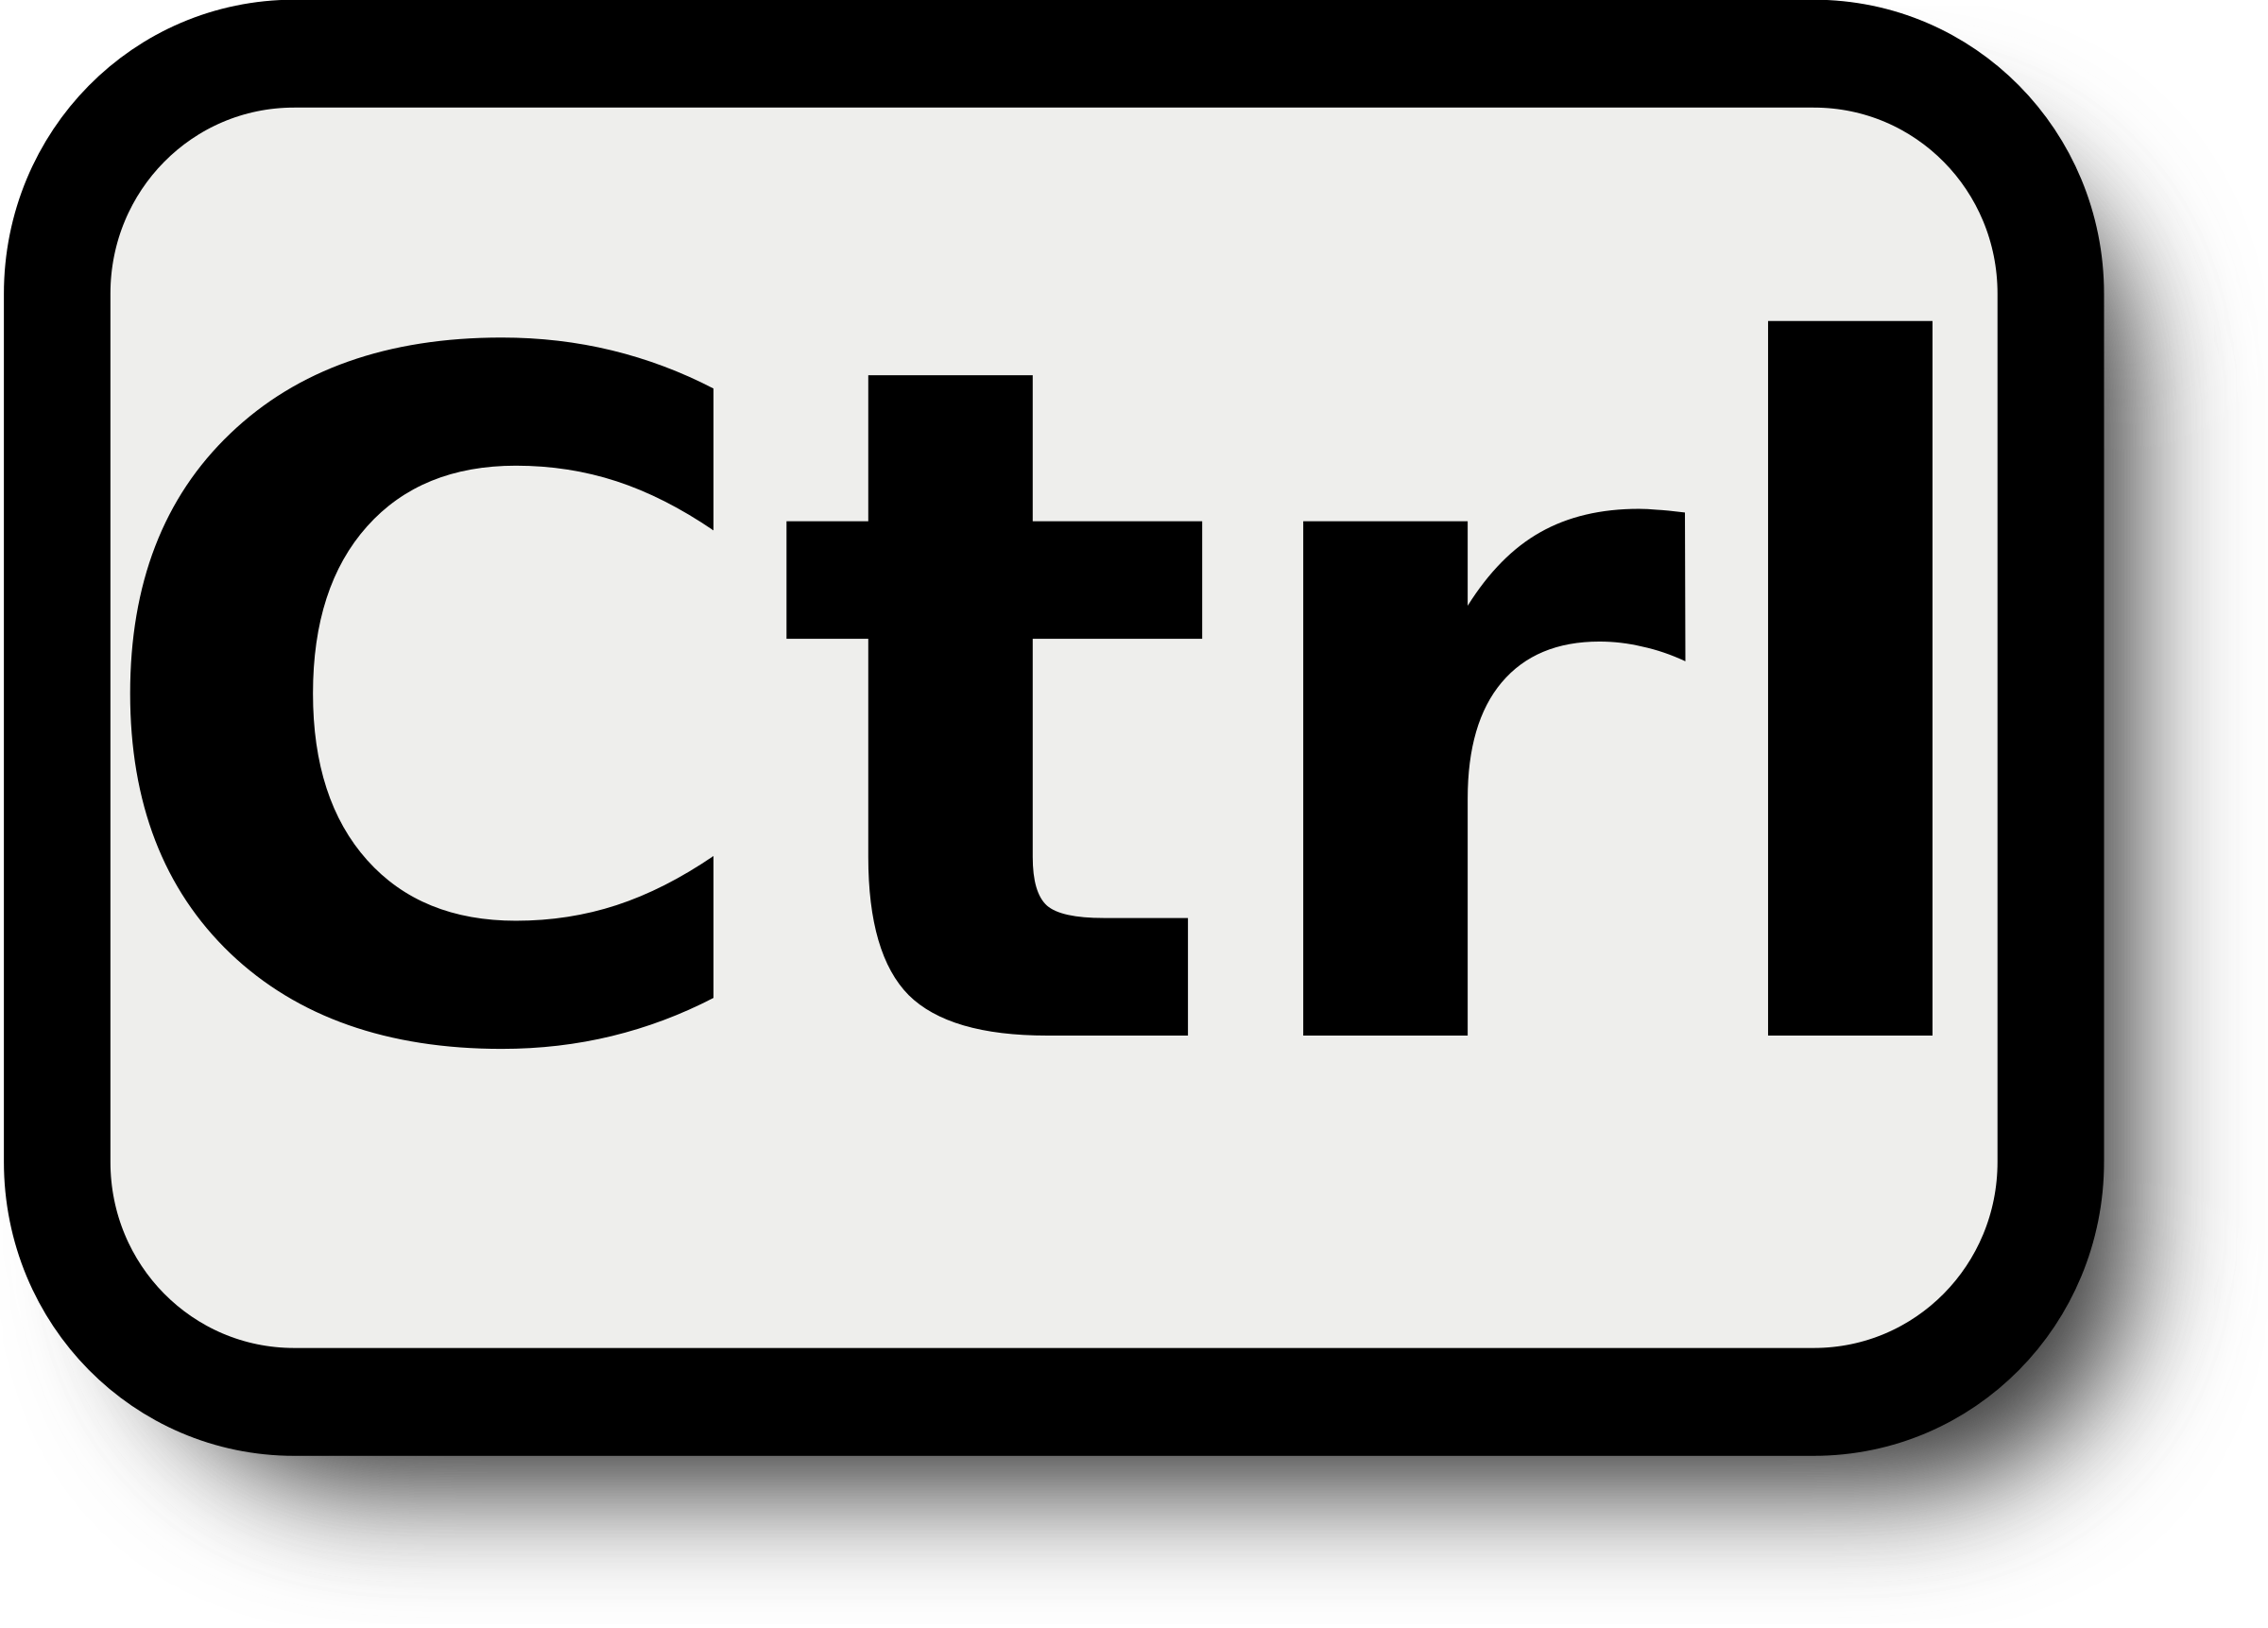 svg library download Ctrl. Keyboard key clipart